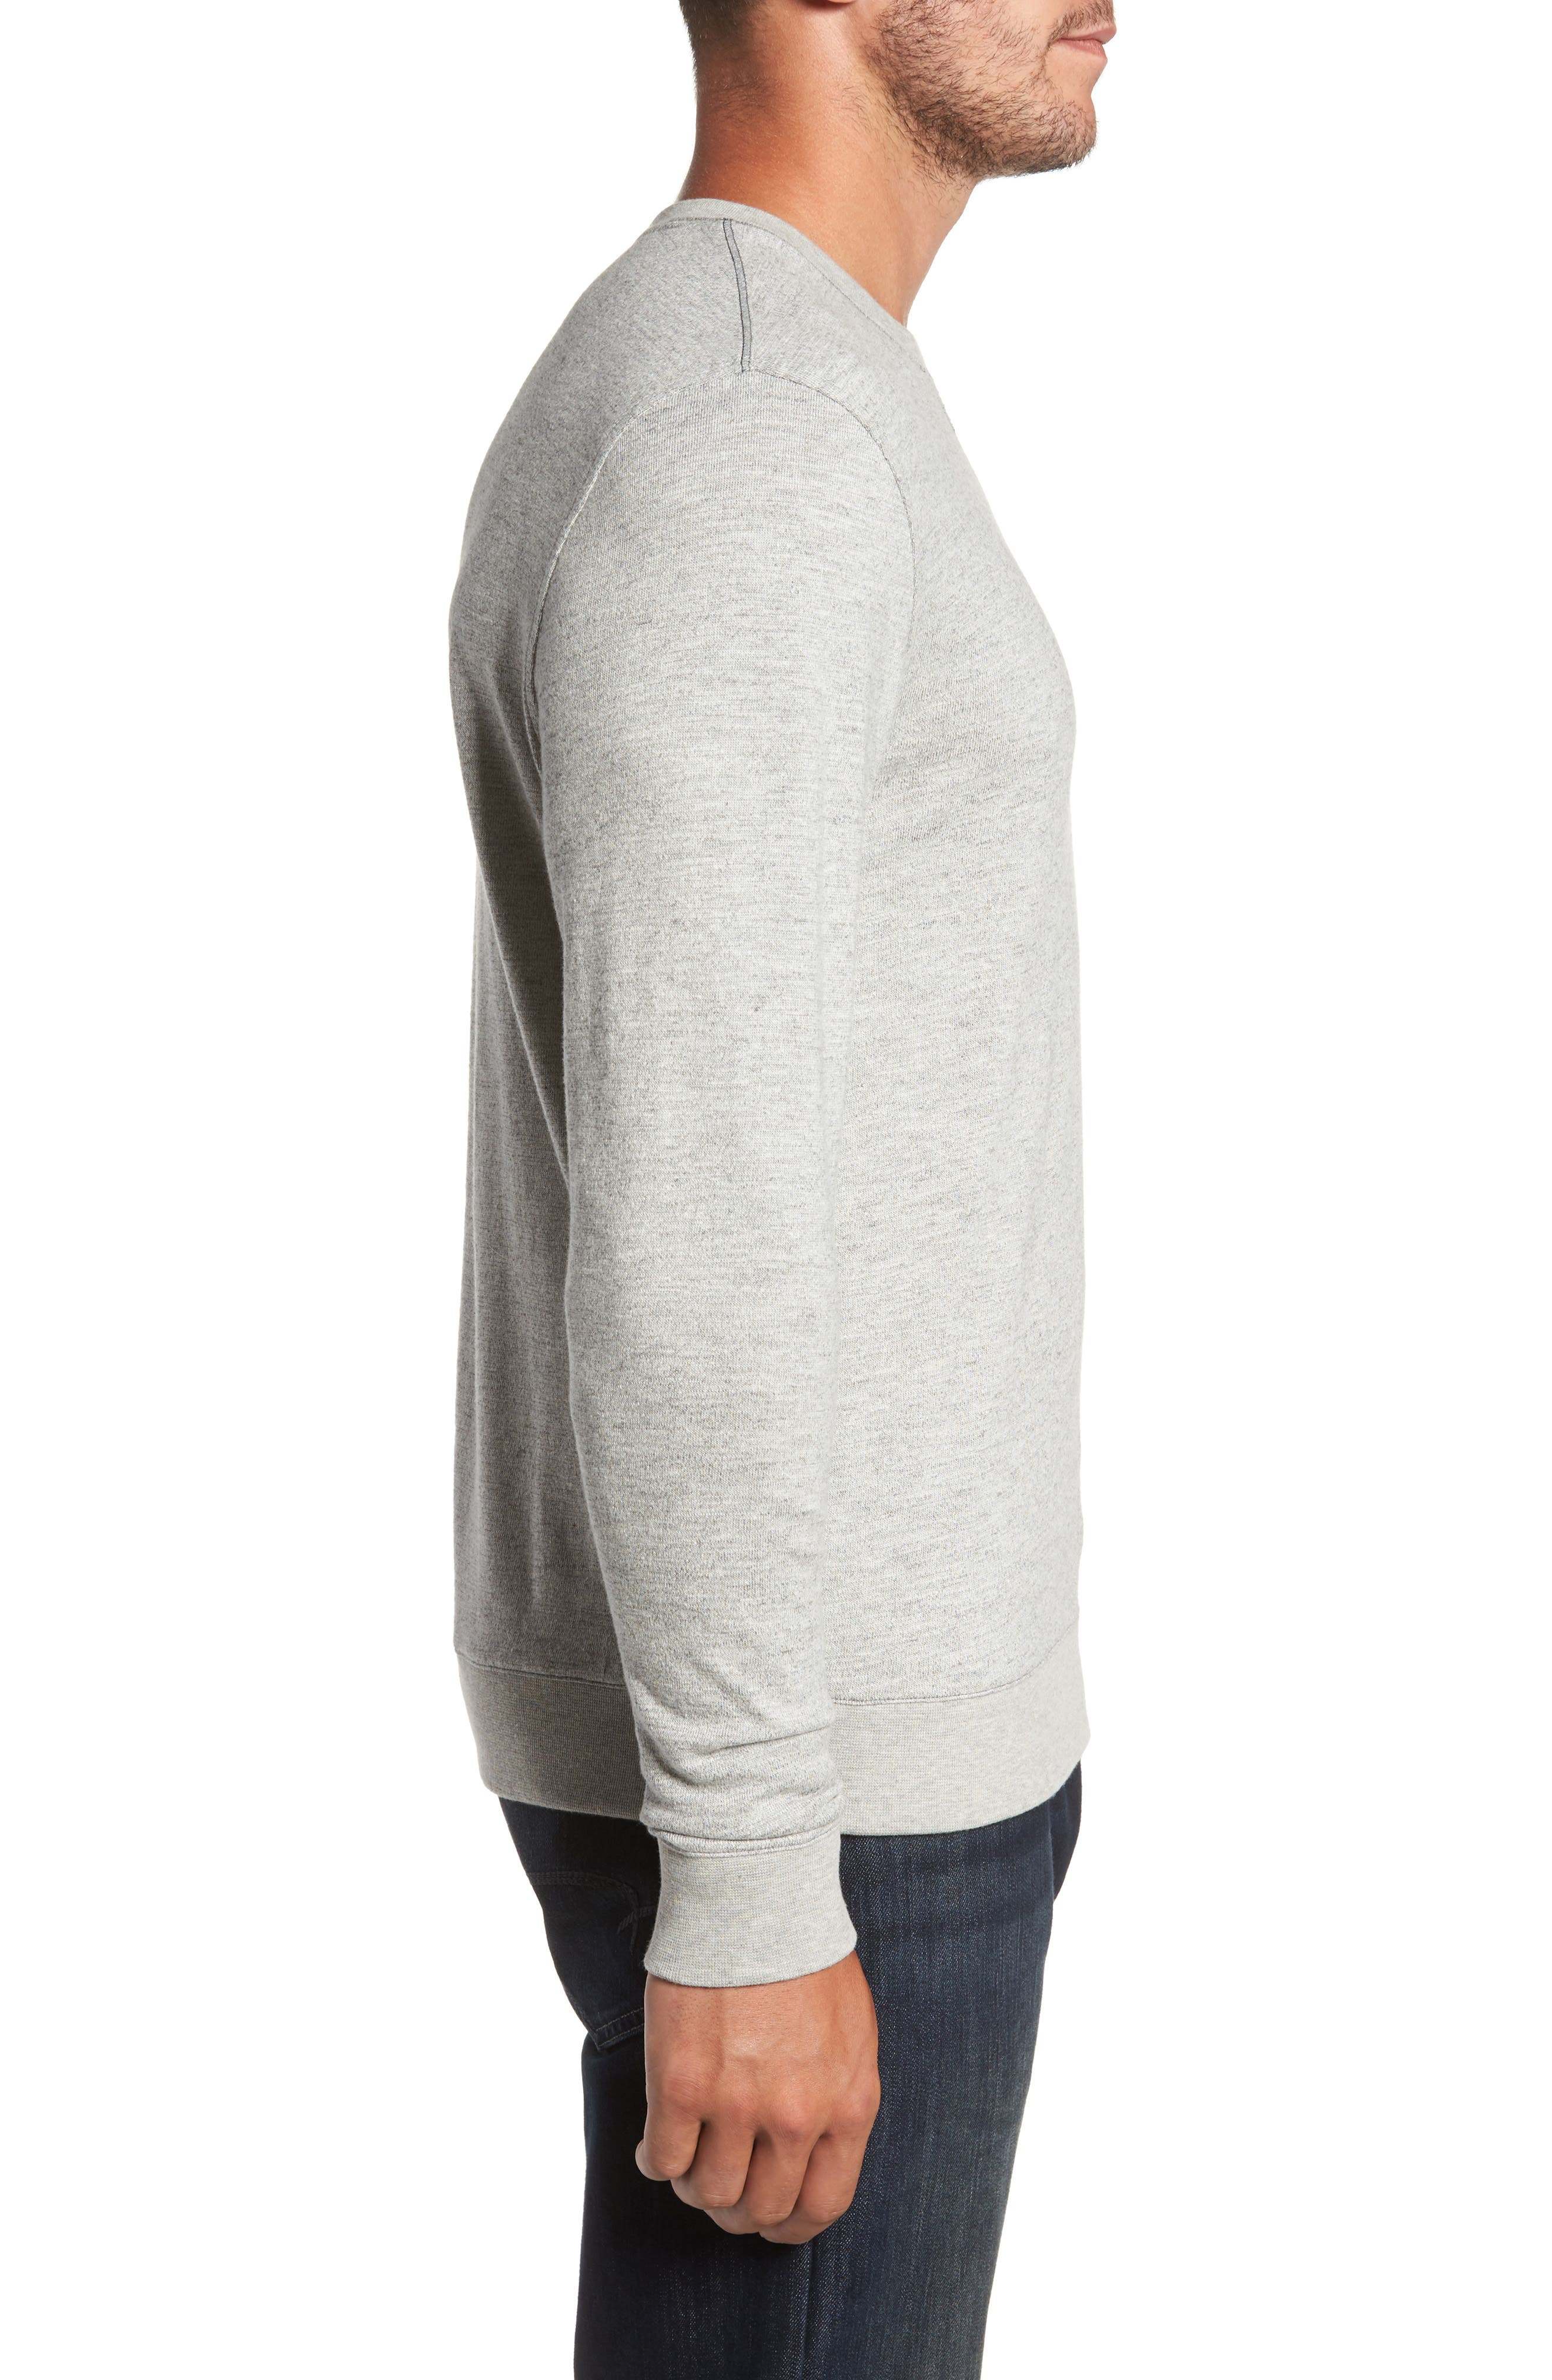 Vienna French Terry T-Shirt,                             Alternate thumbnail 3, color,                             Light Grey